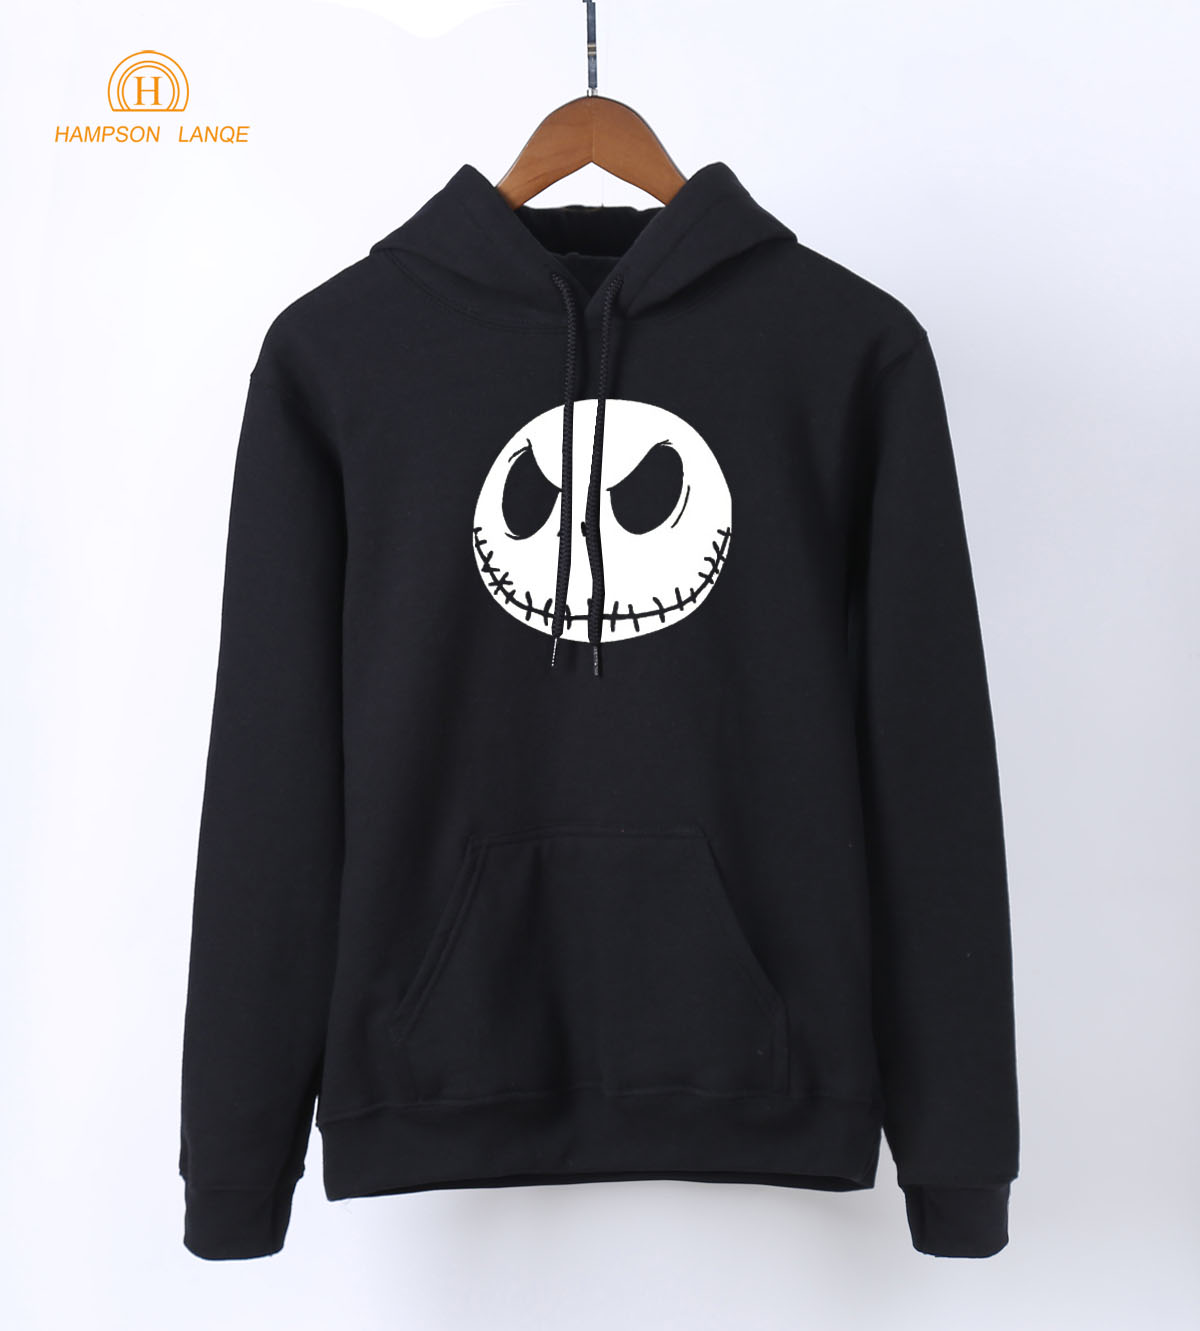 HAMPSON LANQE Halloween Town Pumpkin King Jack Skellington Funny Women Hoodies 2018 Spring Harajuku Sweatshirts Anime Hoodie